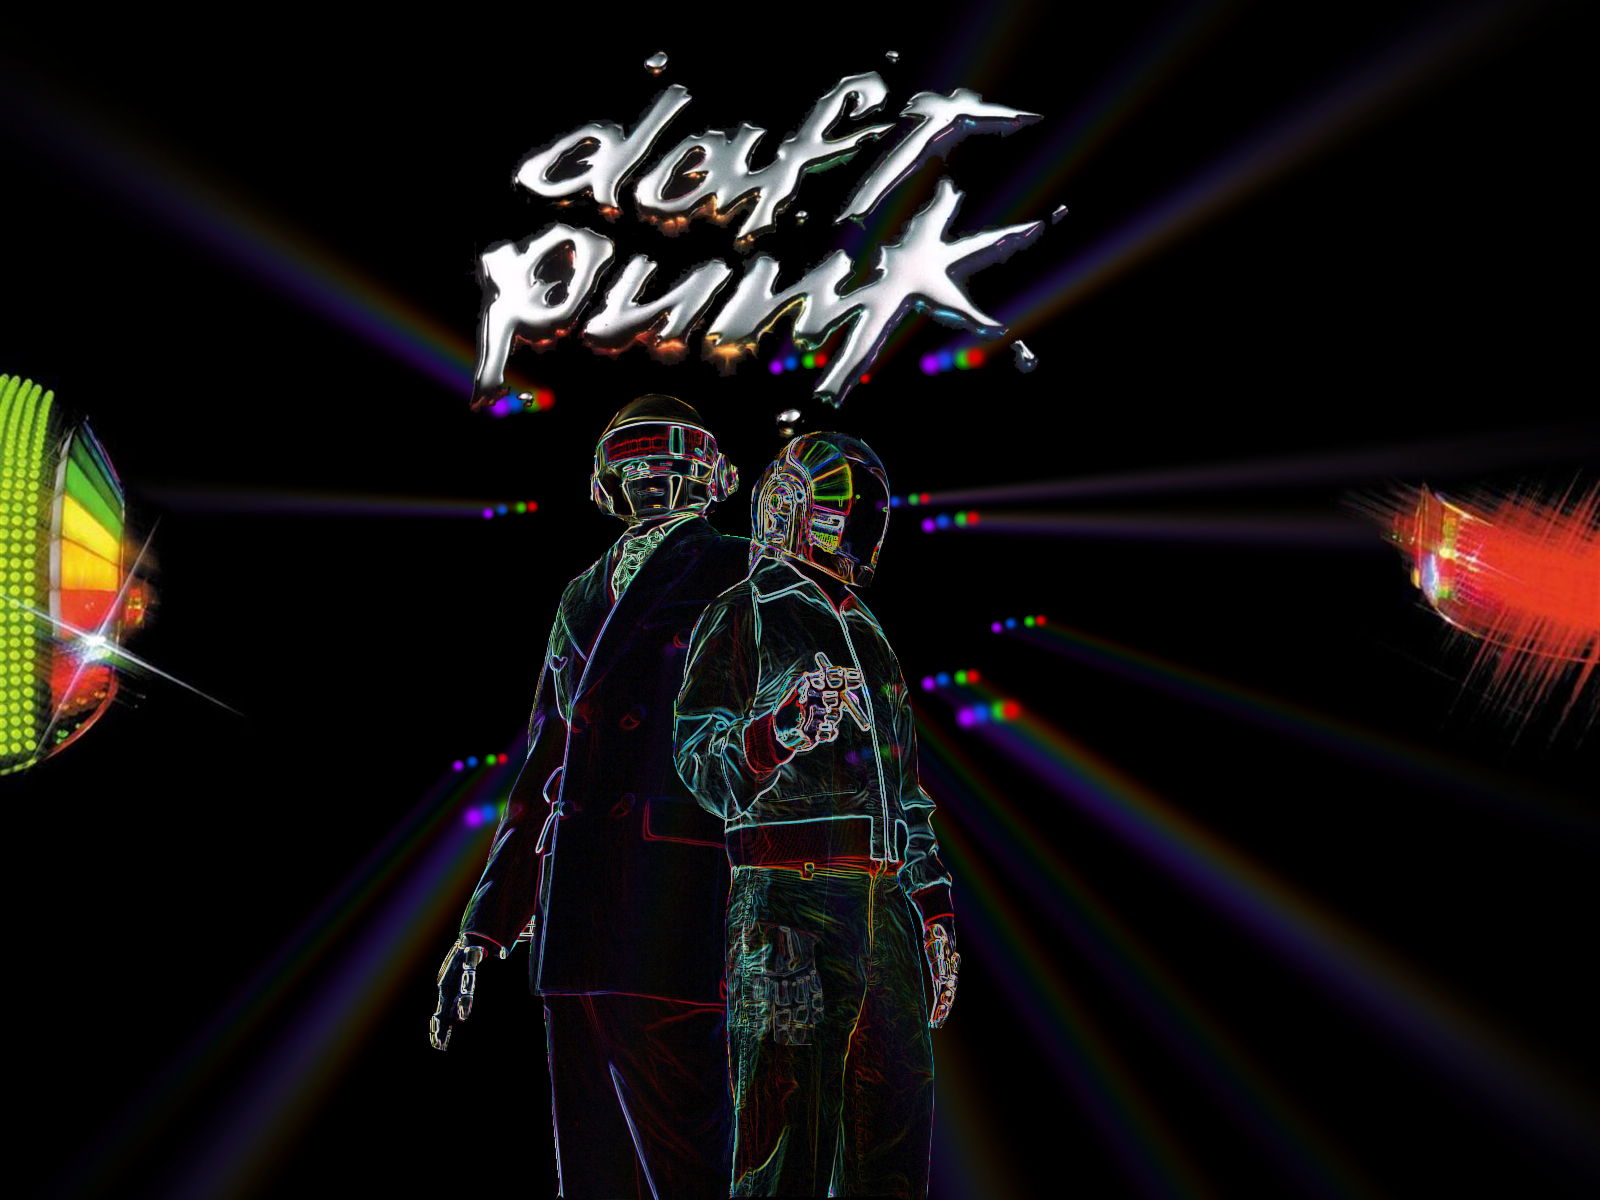 Daft Punk Wallpaper and Background Image | 1600x1200 | ID ...